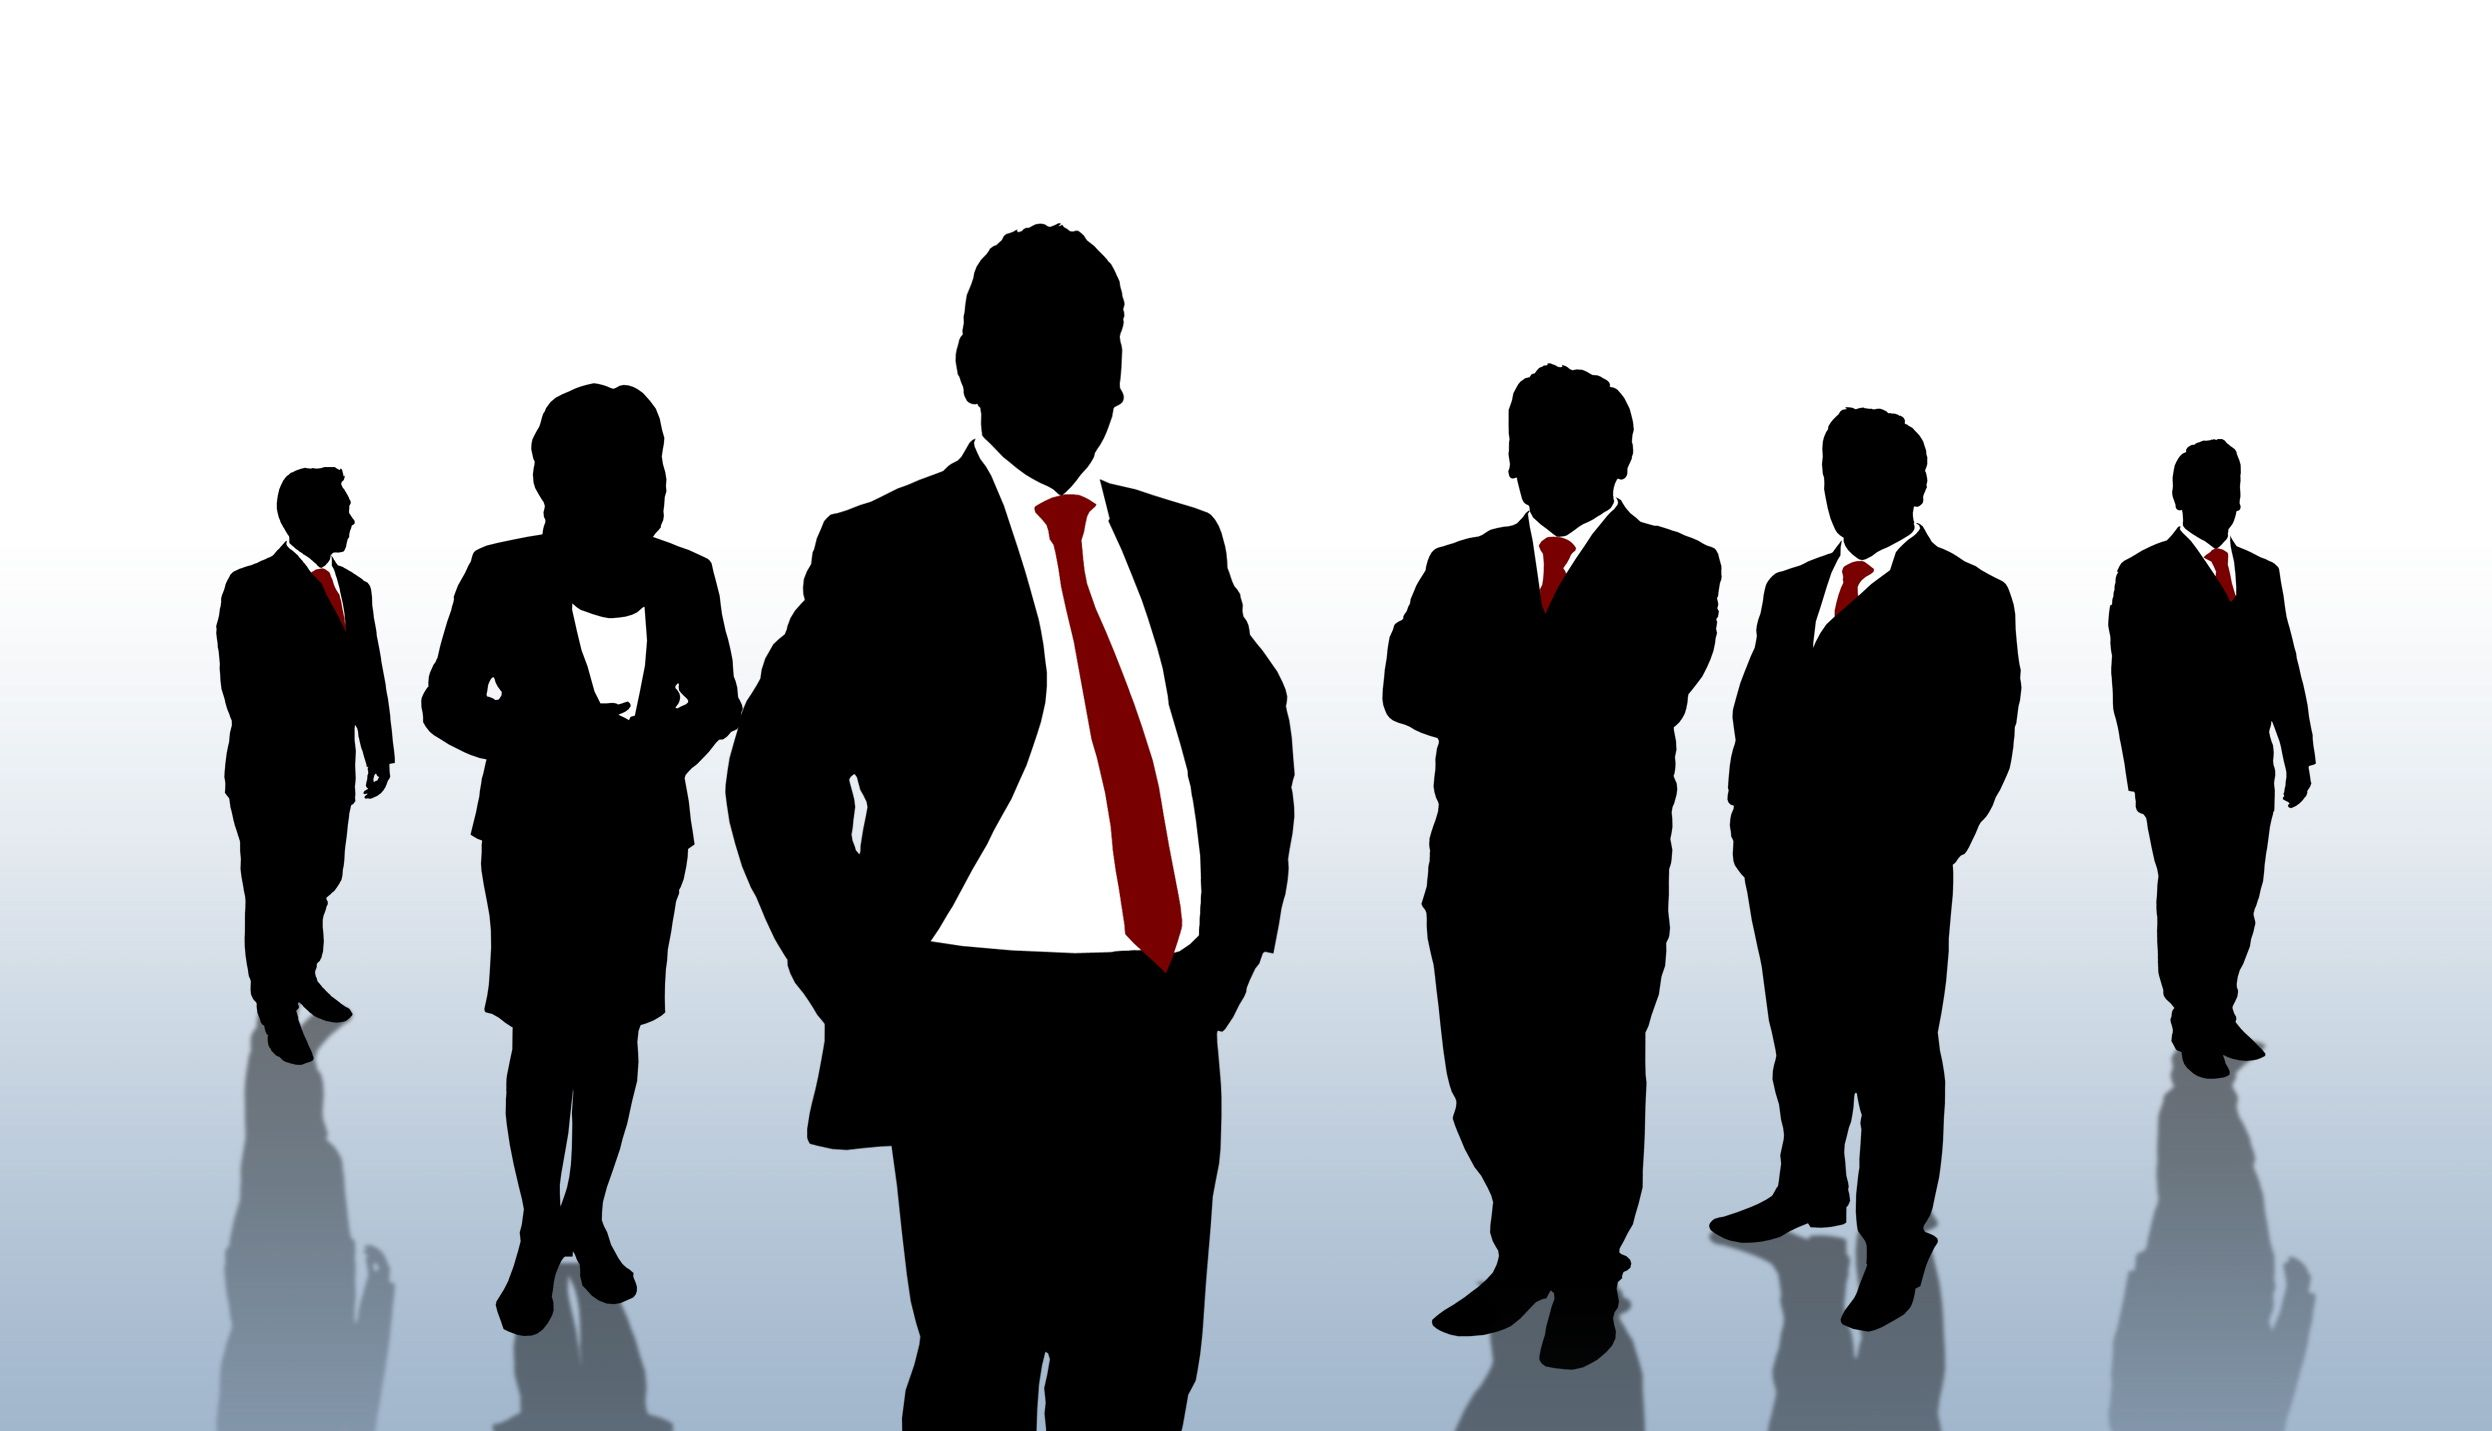 Men suited for placements after MBA